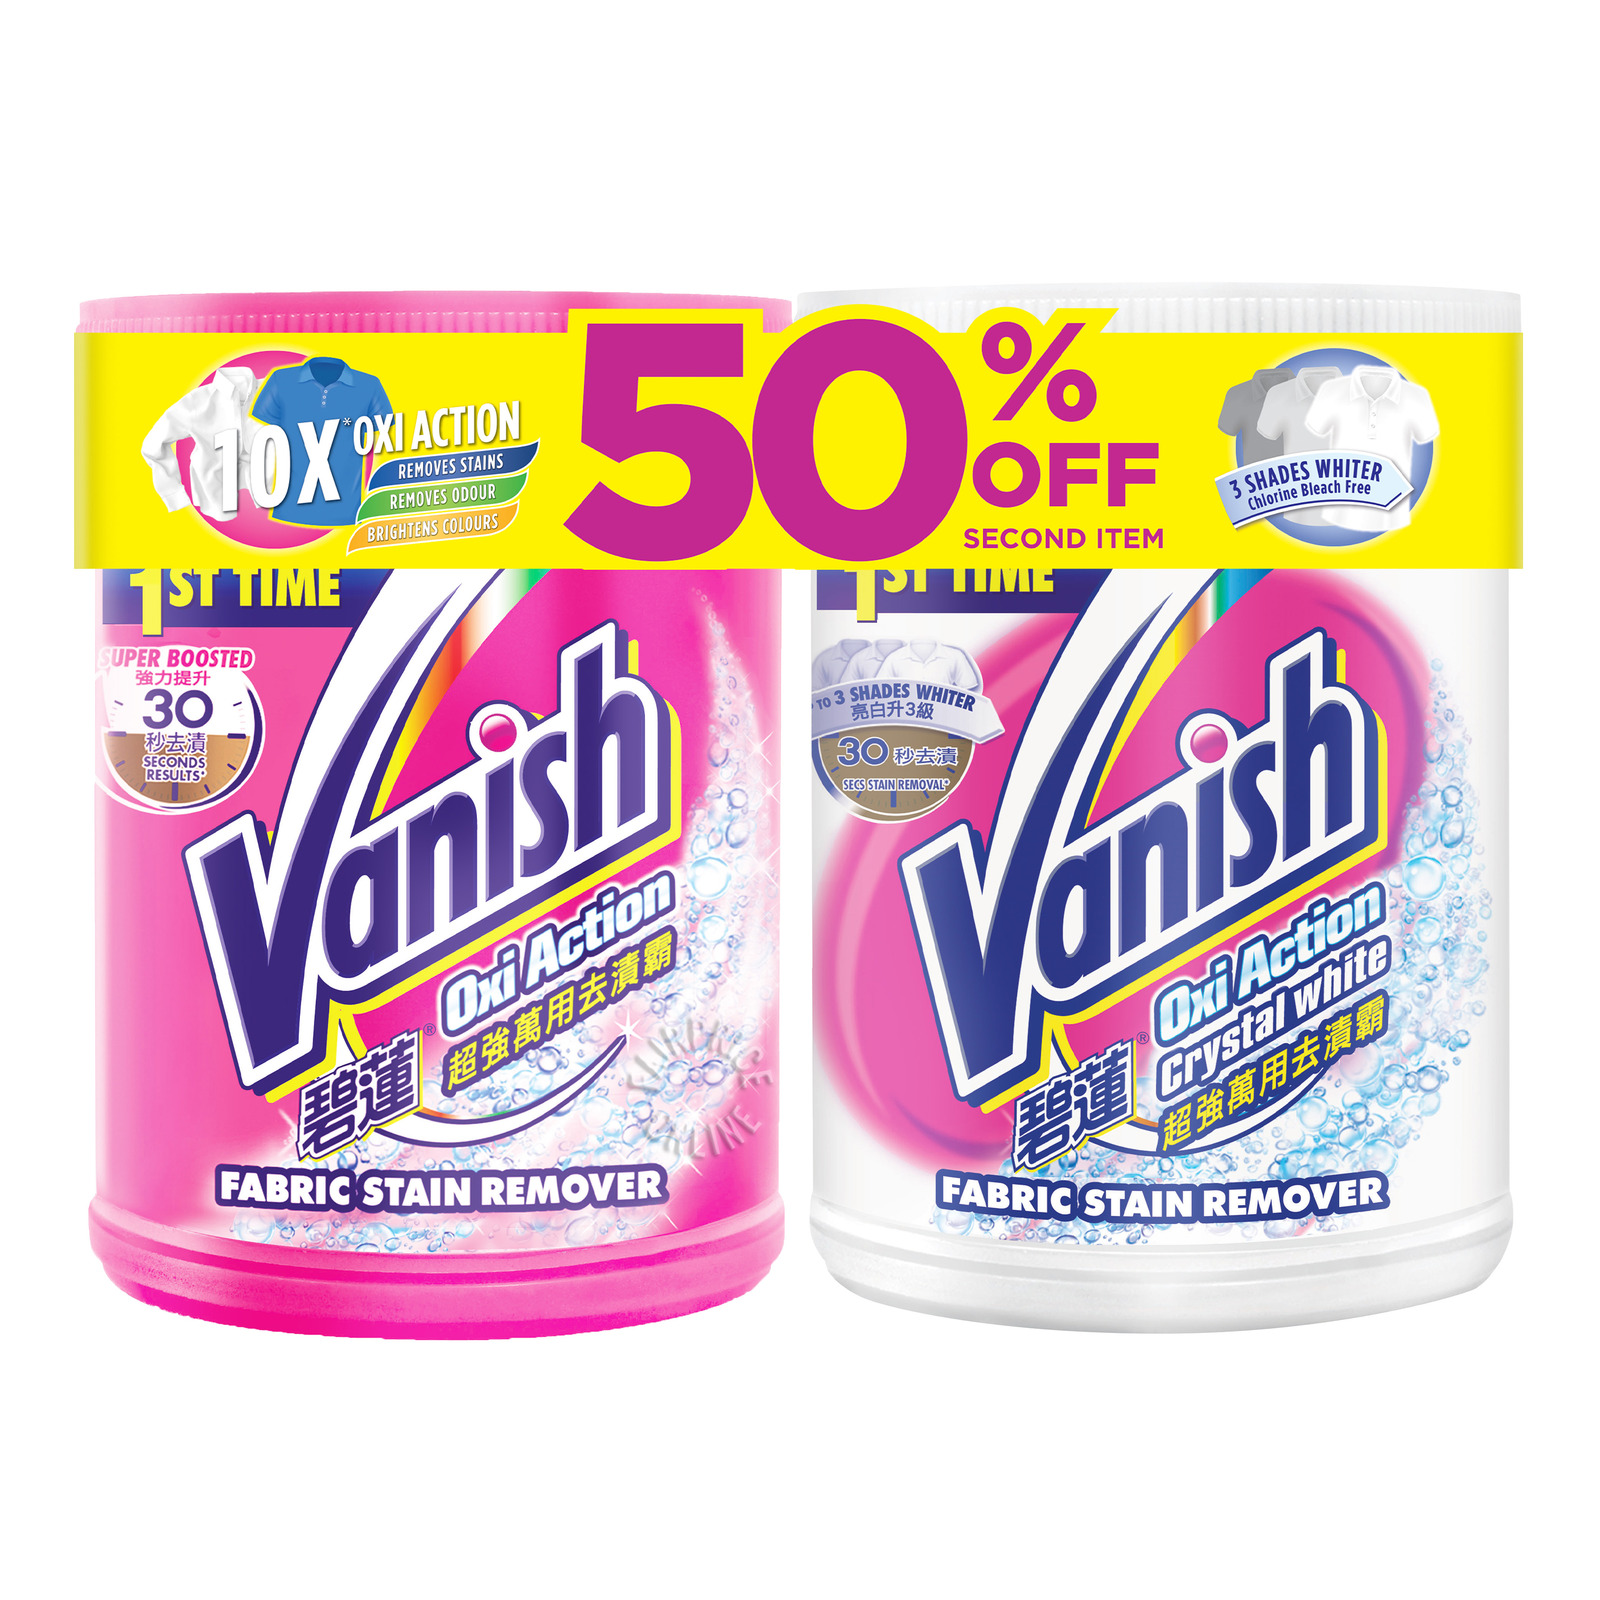 Vanish Powder Fabric Stain Remover -OxiAction+CrystalWhite